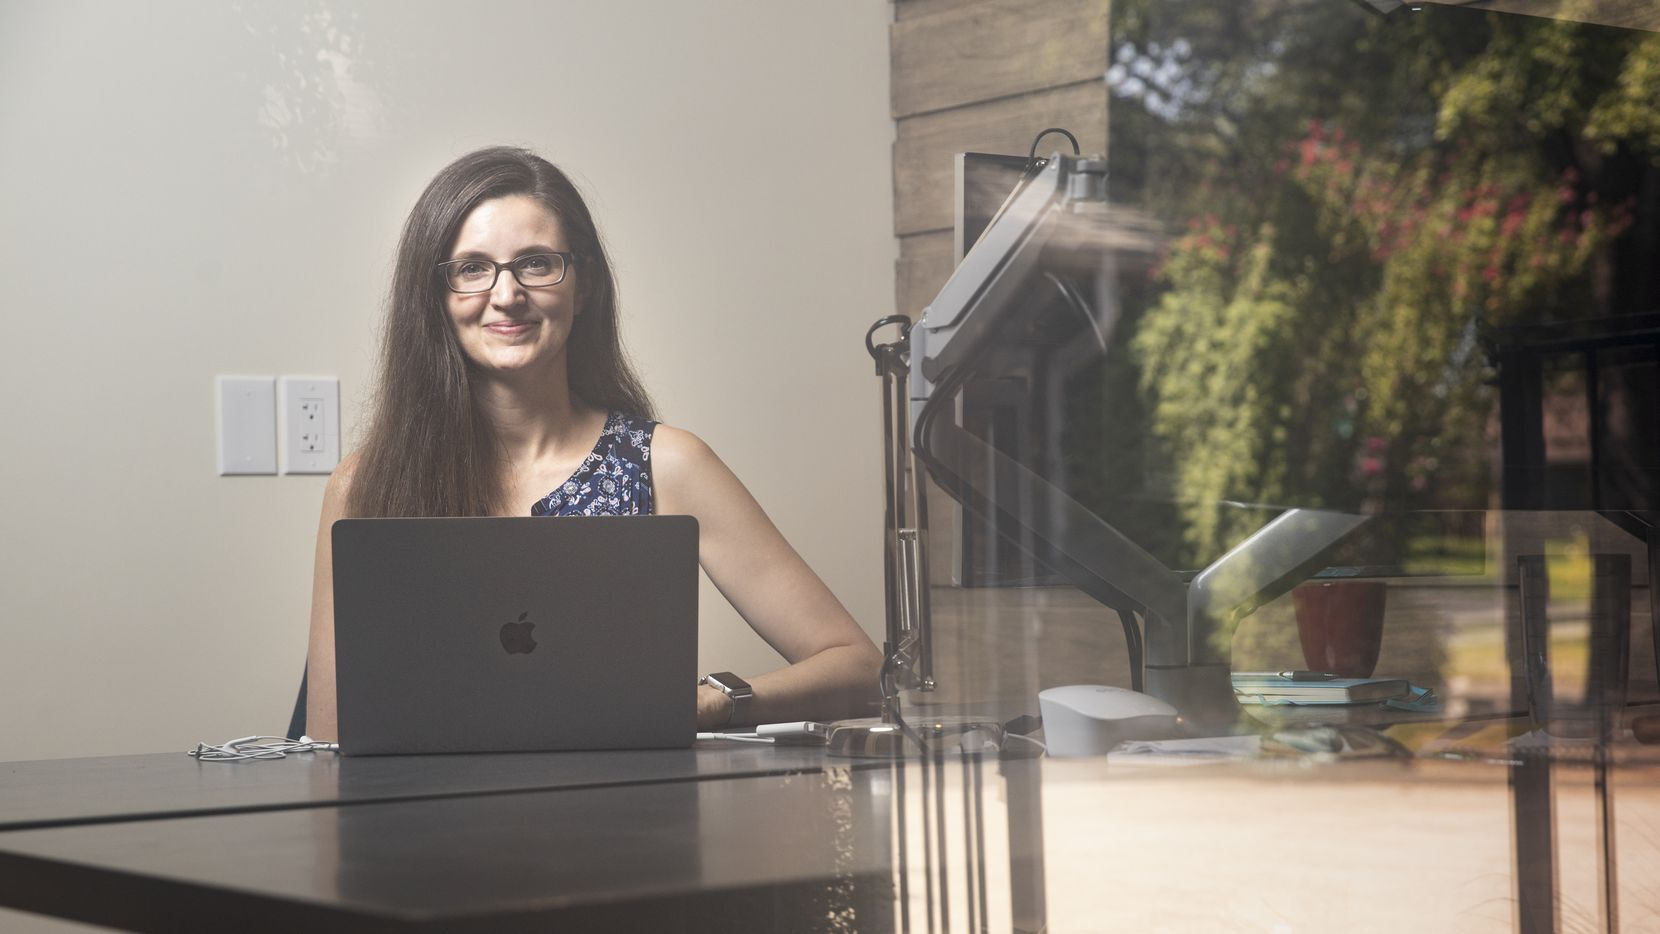 Candice Mills, a psychologist that studies how young children think, poses for a photo in her home office on Aug. 7, 2020 in Dallas. Mills had to quickly adapt and move more of her psychological experiments online, allowing her to recruit more diverse participants. (Juan Figueroa/ The Dallas Morning News)